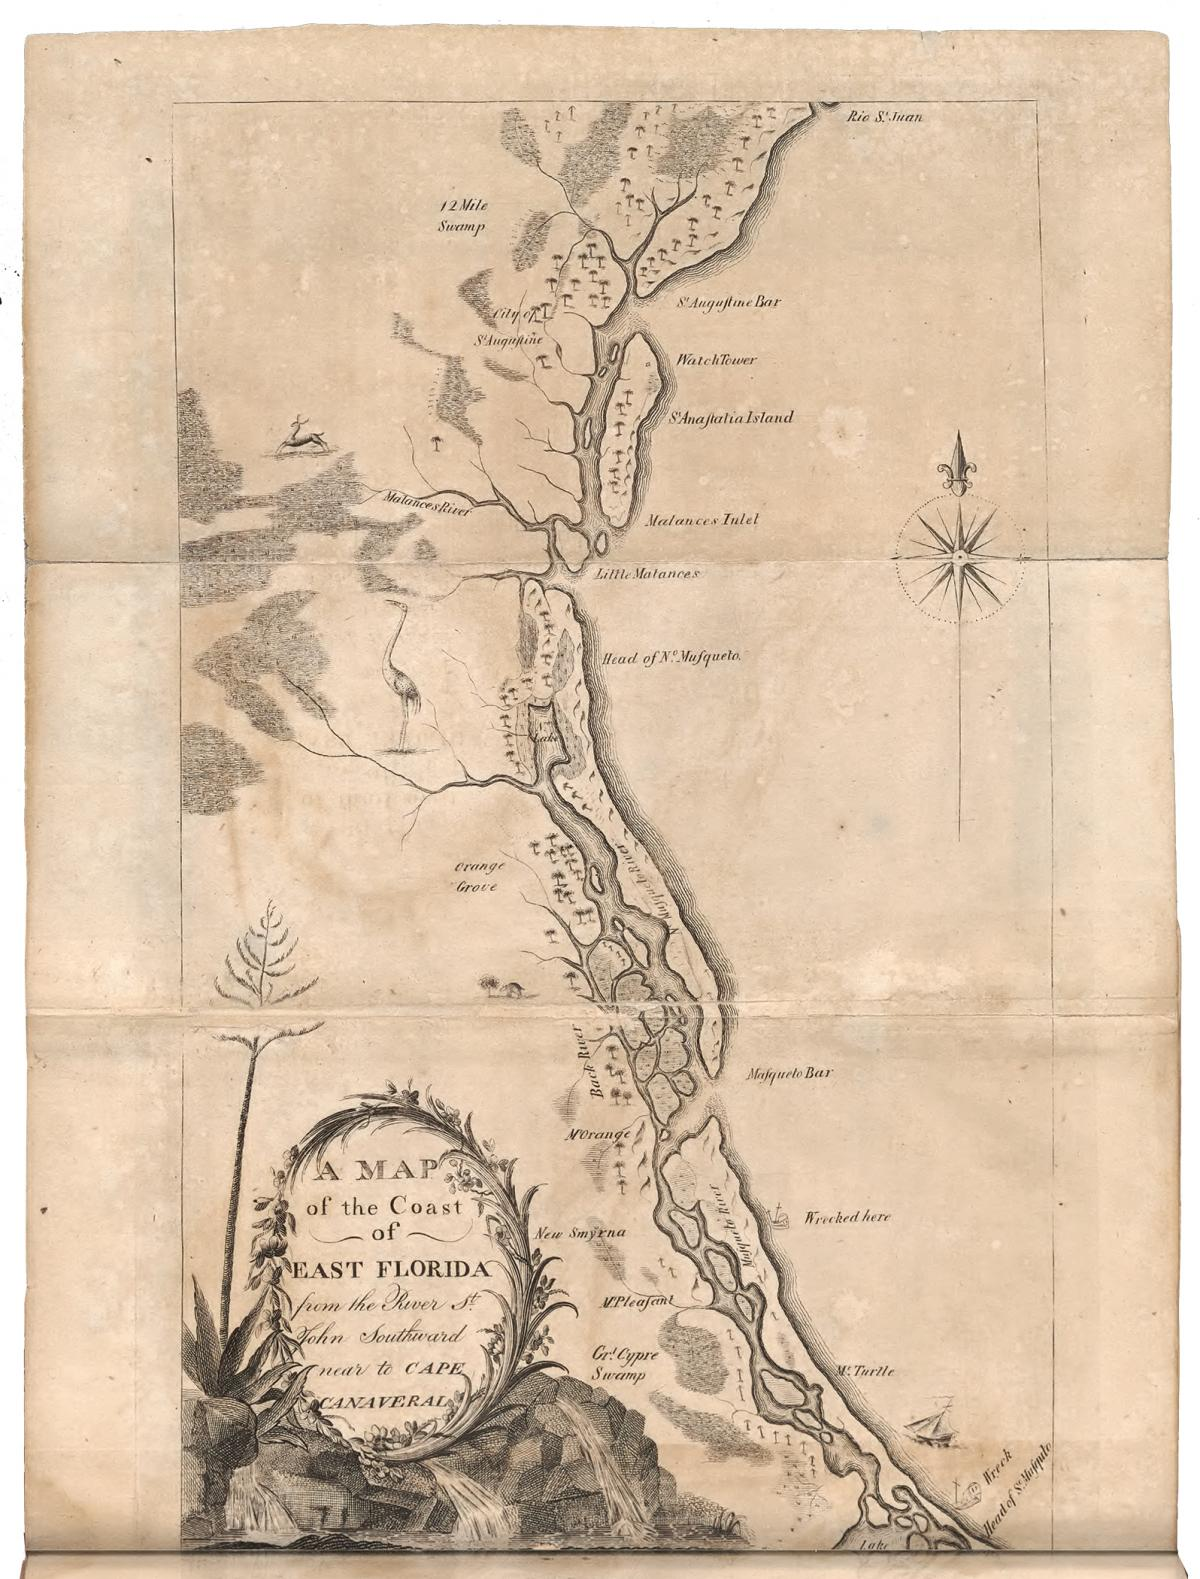 Florida map by Bartram